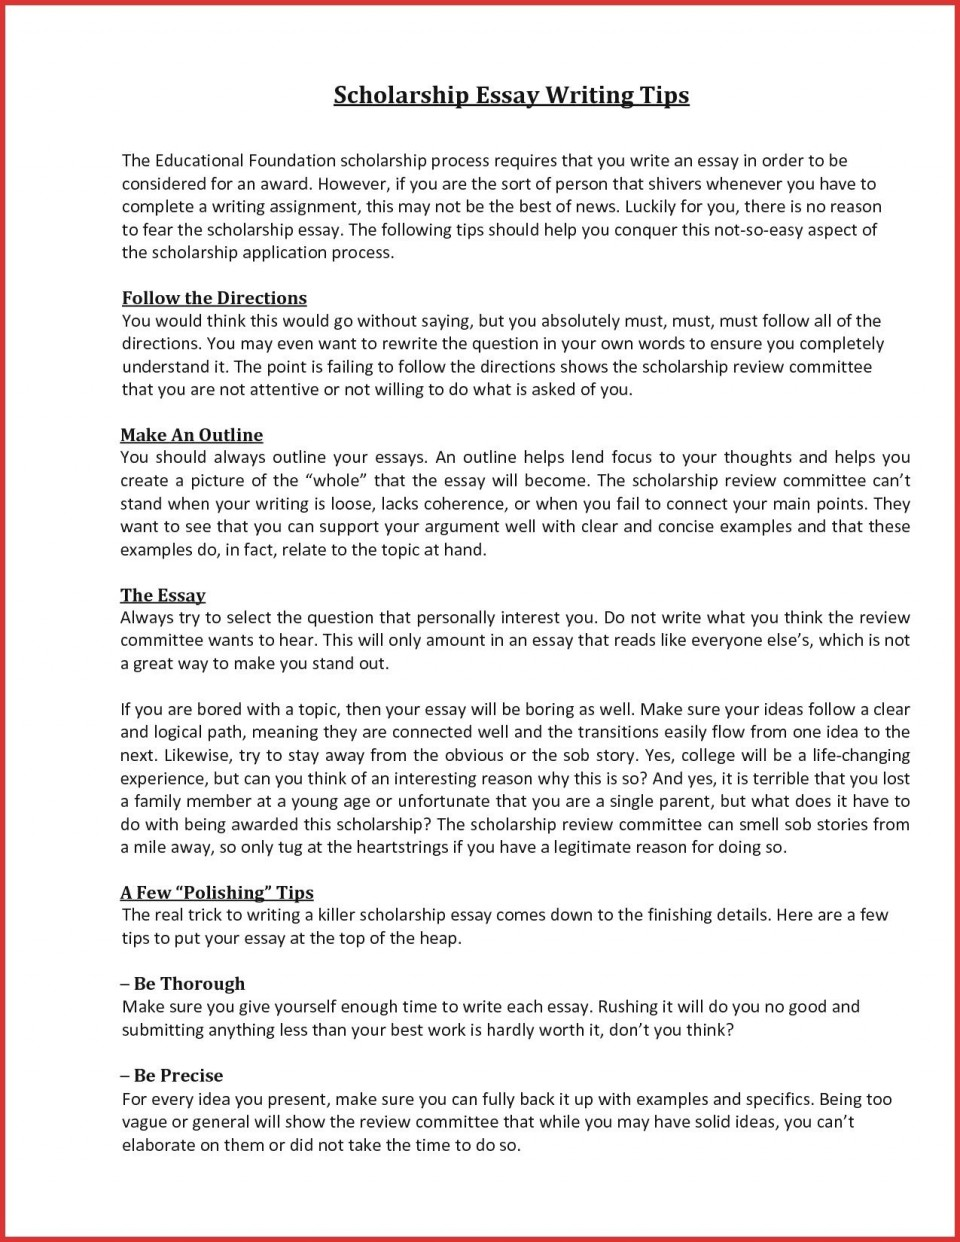 013 Essay On Fear Write Good General Paper Essays Level Results Best Opinion What Is The Of Writing Called Papers Stupendous Darkness My Failure Ways To Overcome Public Speaking 960